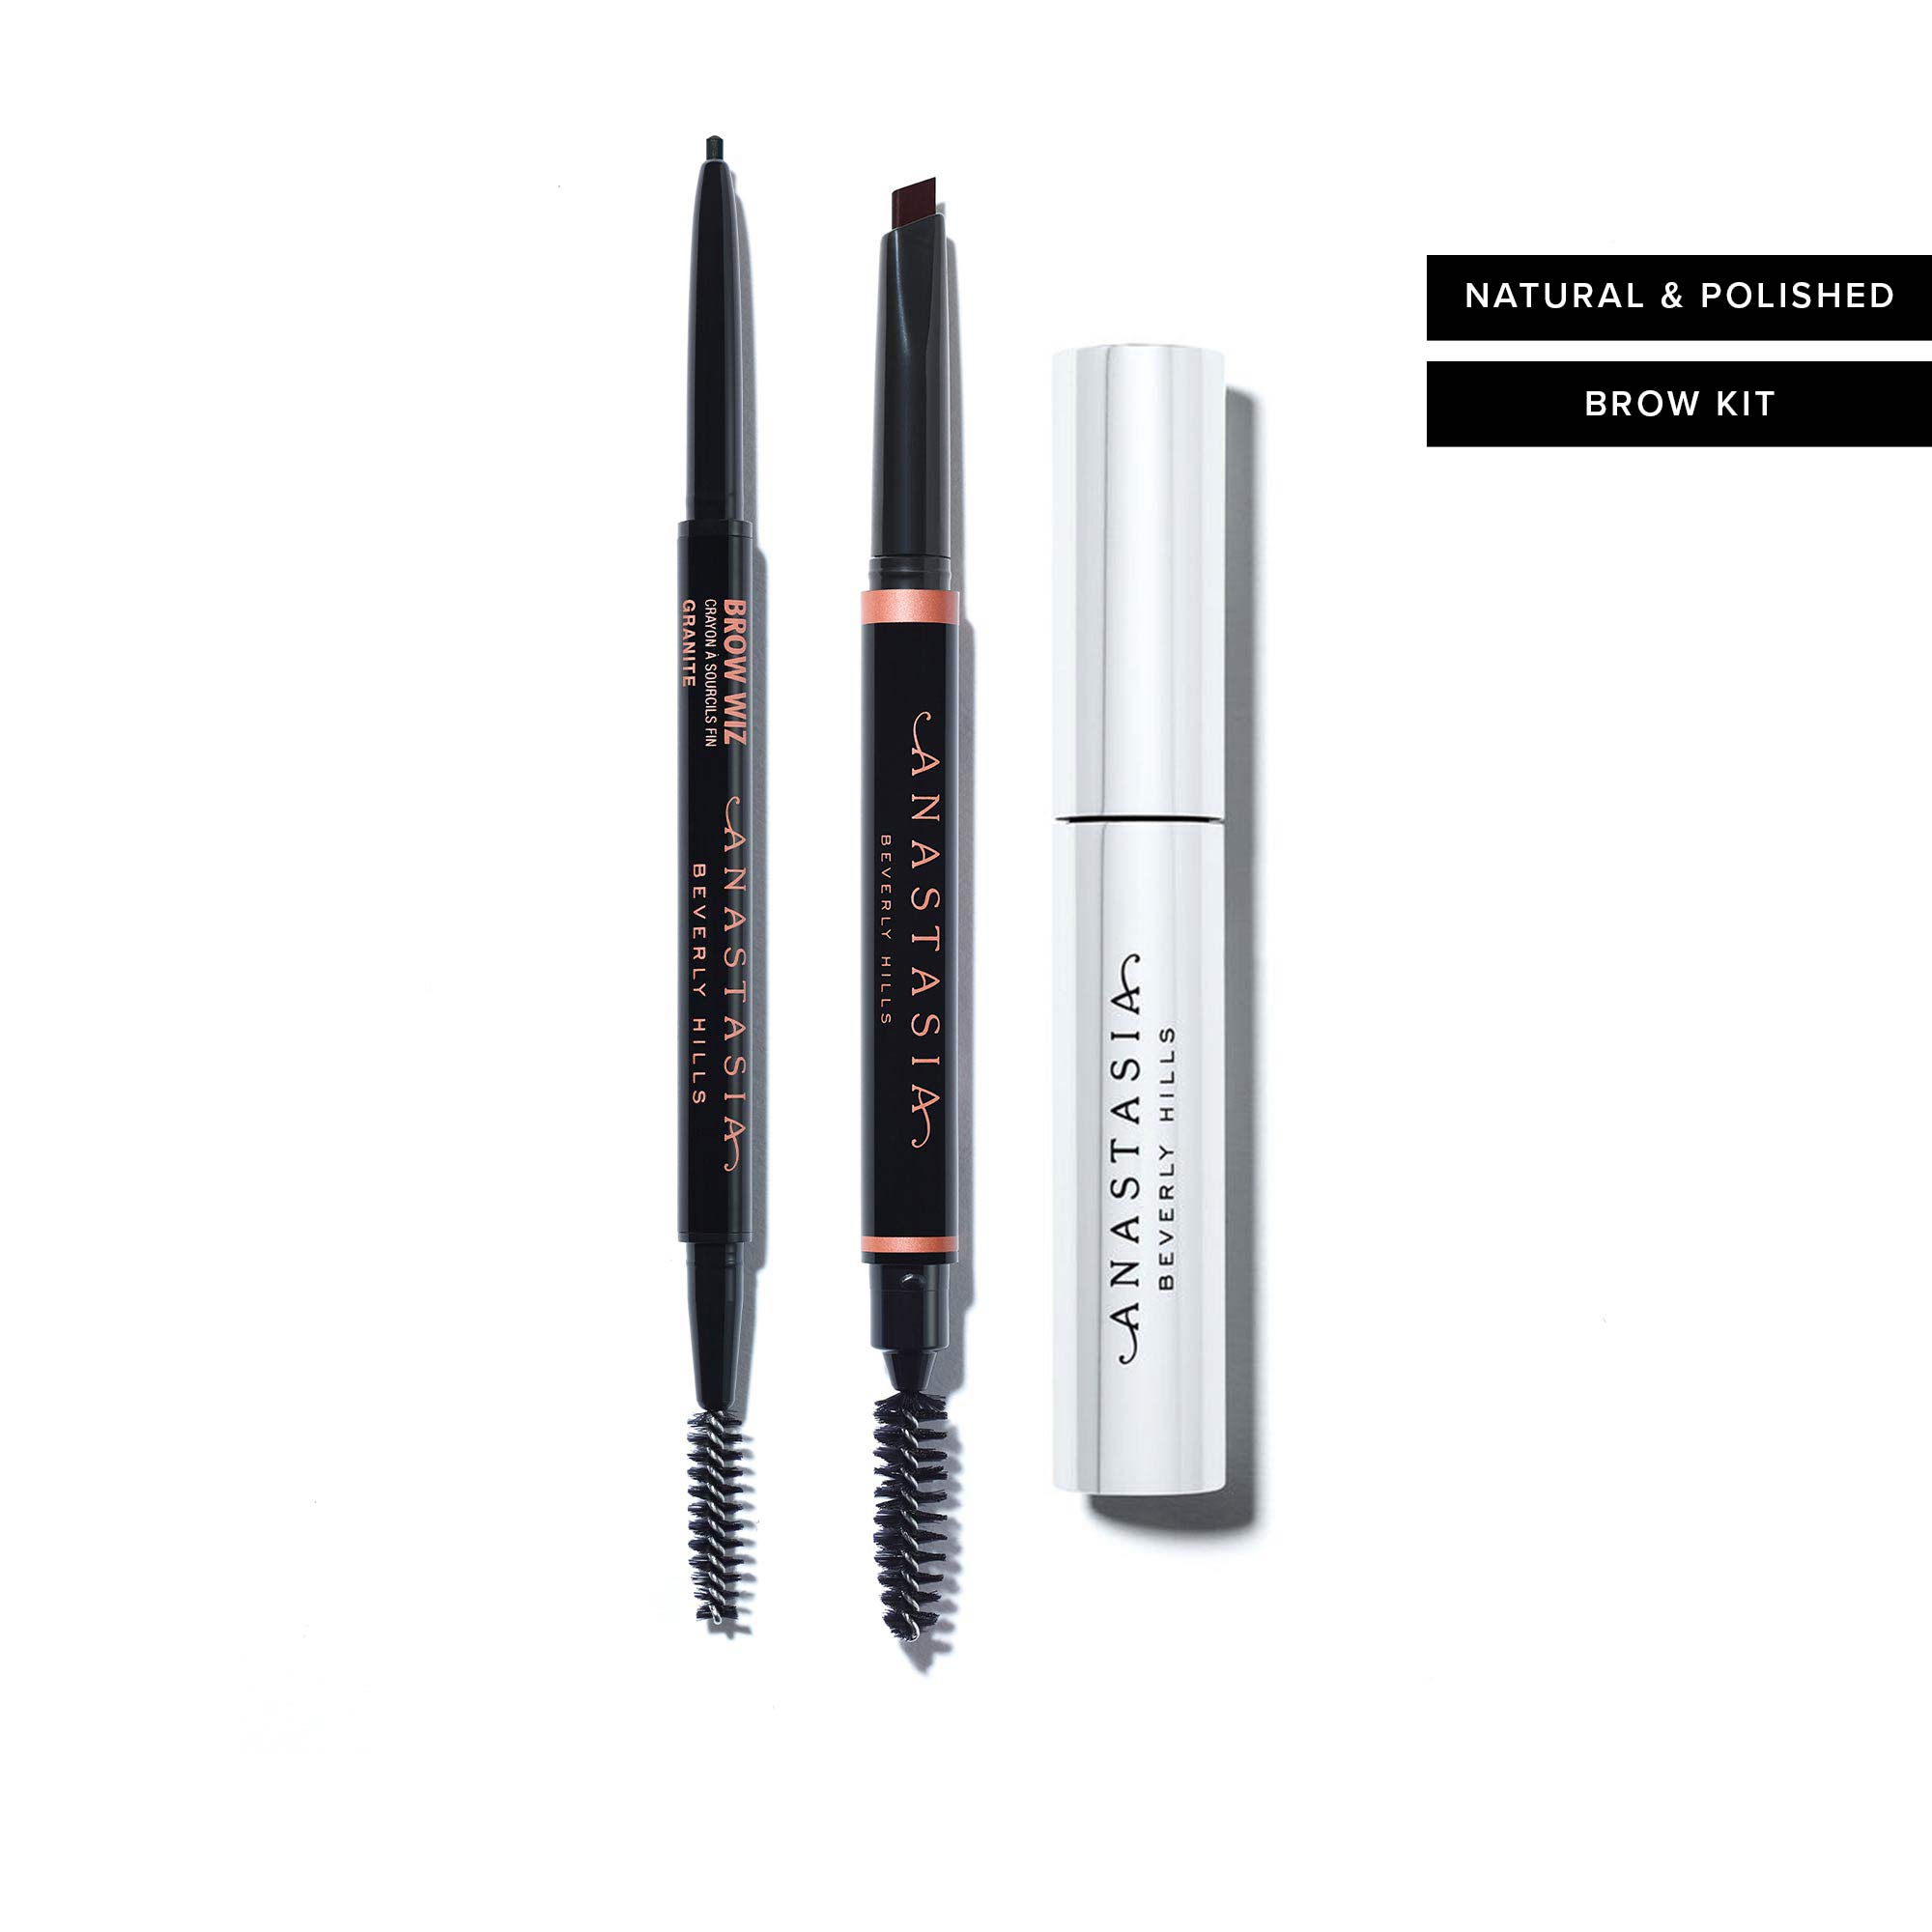 Natural & Polished Brow Kit - Medium Brown and Dark Brown